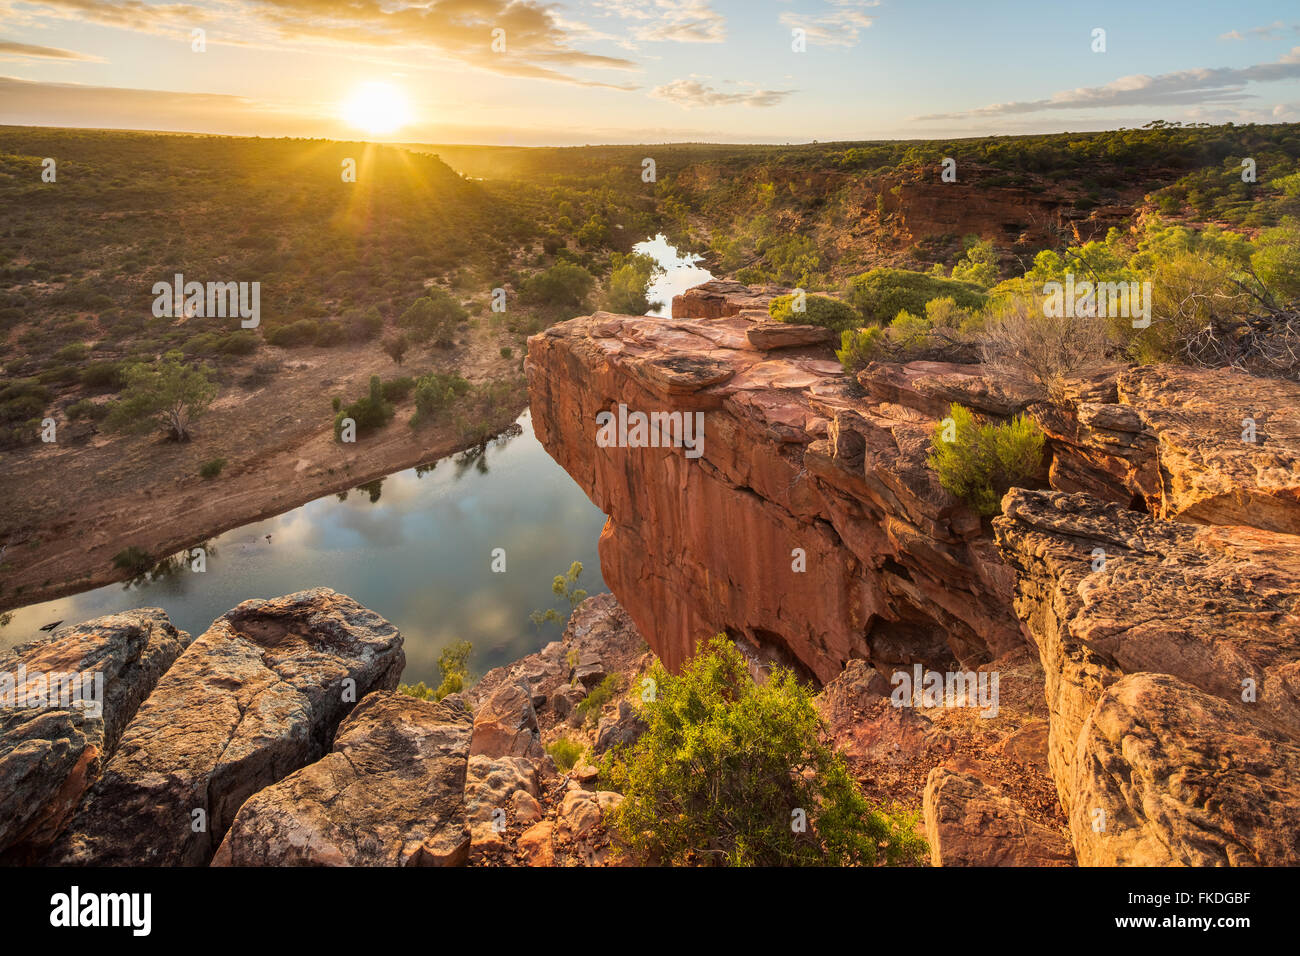 the Hawk's Head lookout over the Murchison River gorge, Kalbarri National Park, Western Australia - Stock Image